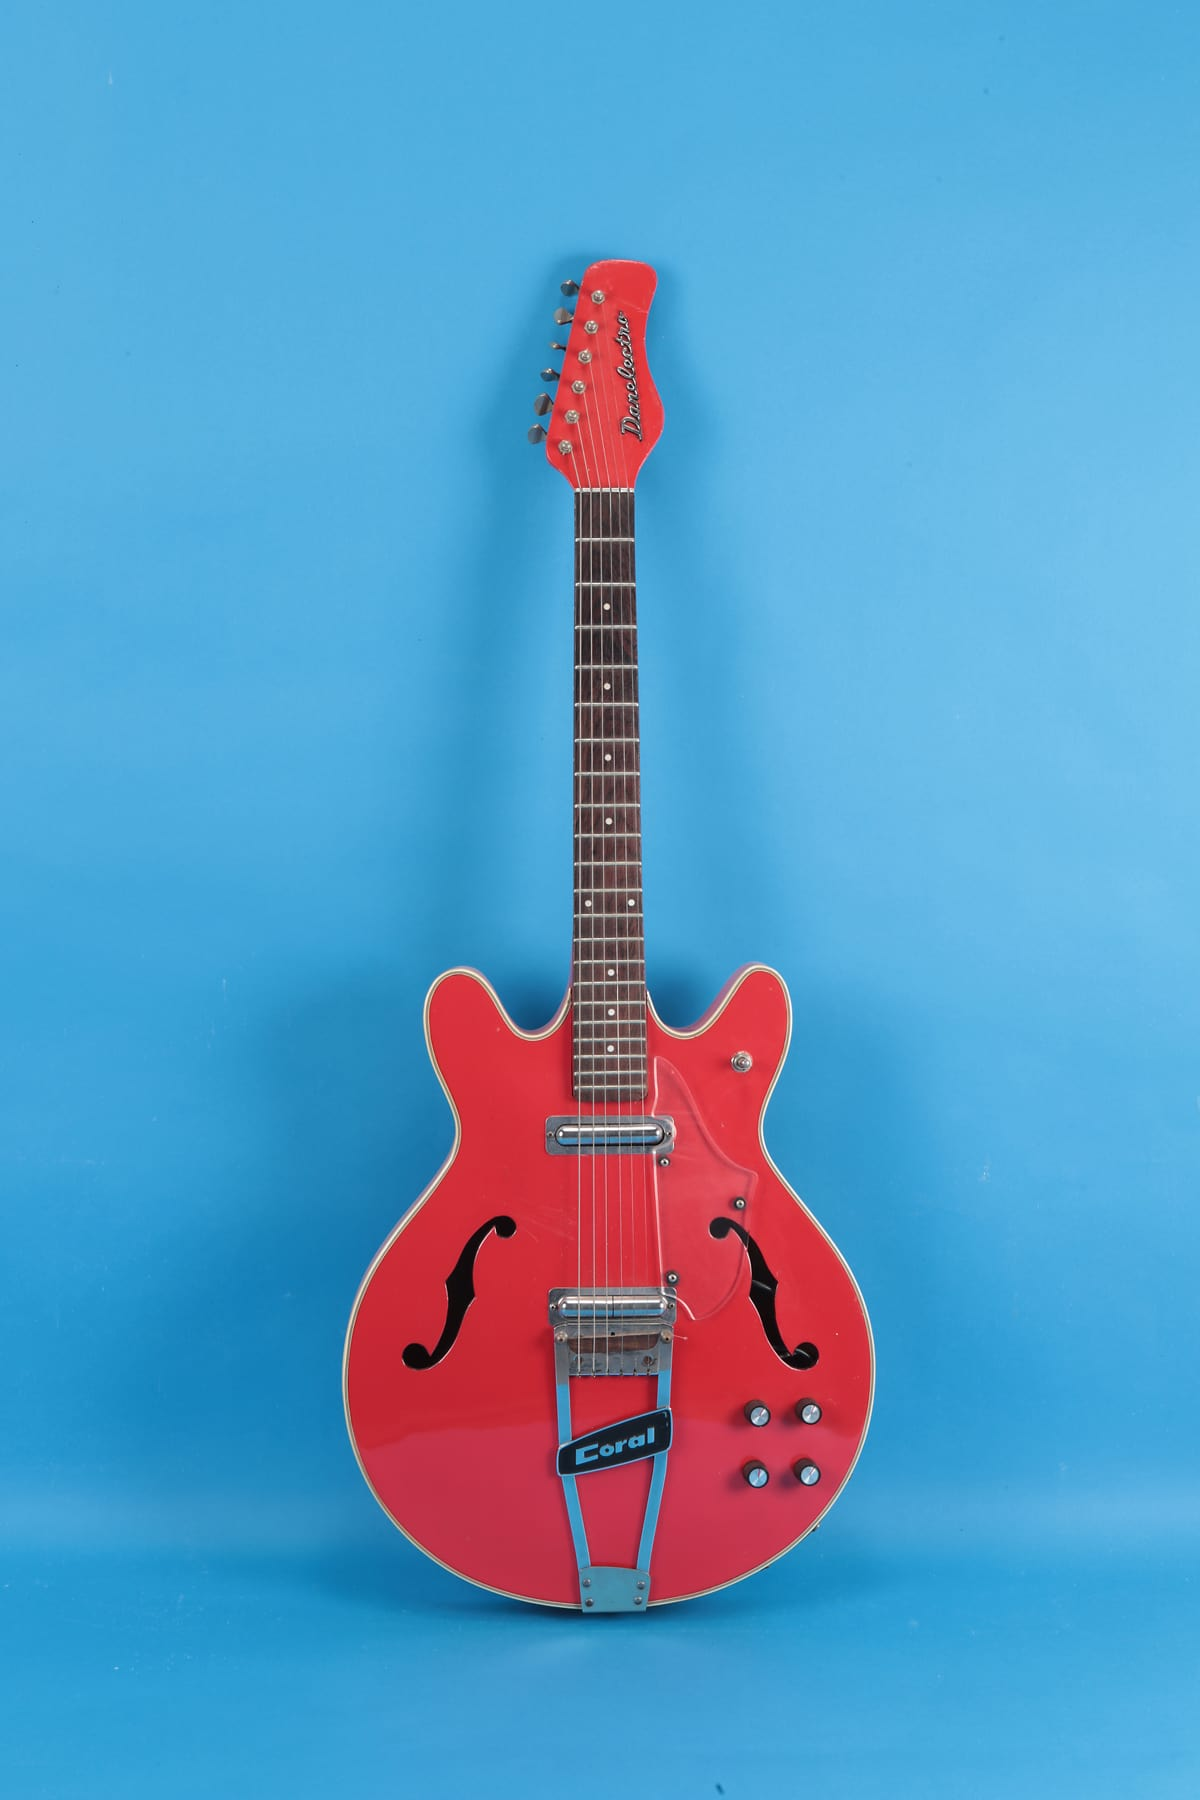 Body Shops Near Me >> Danelectro Coral Firefly 1968 Red | Reverb